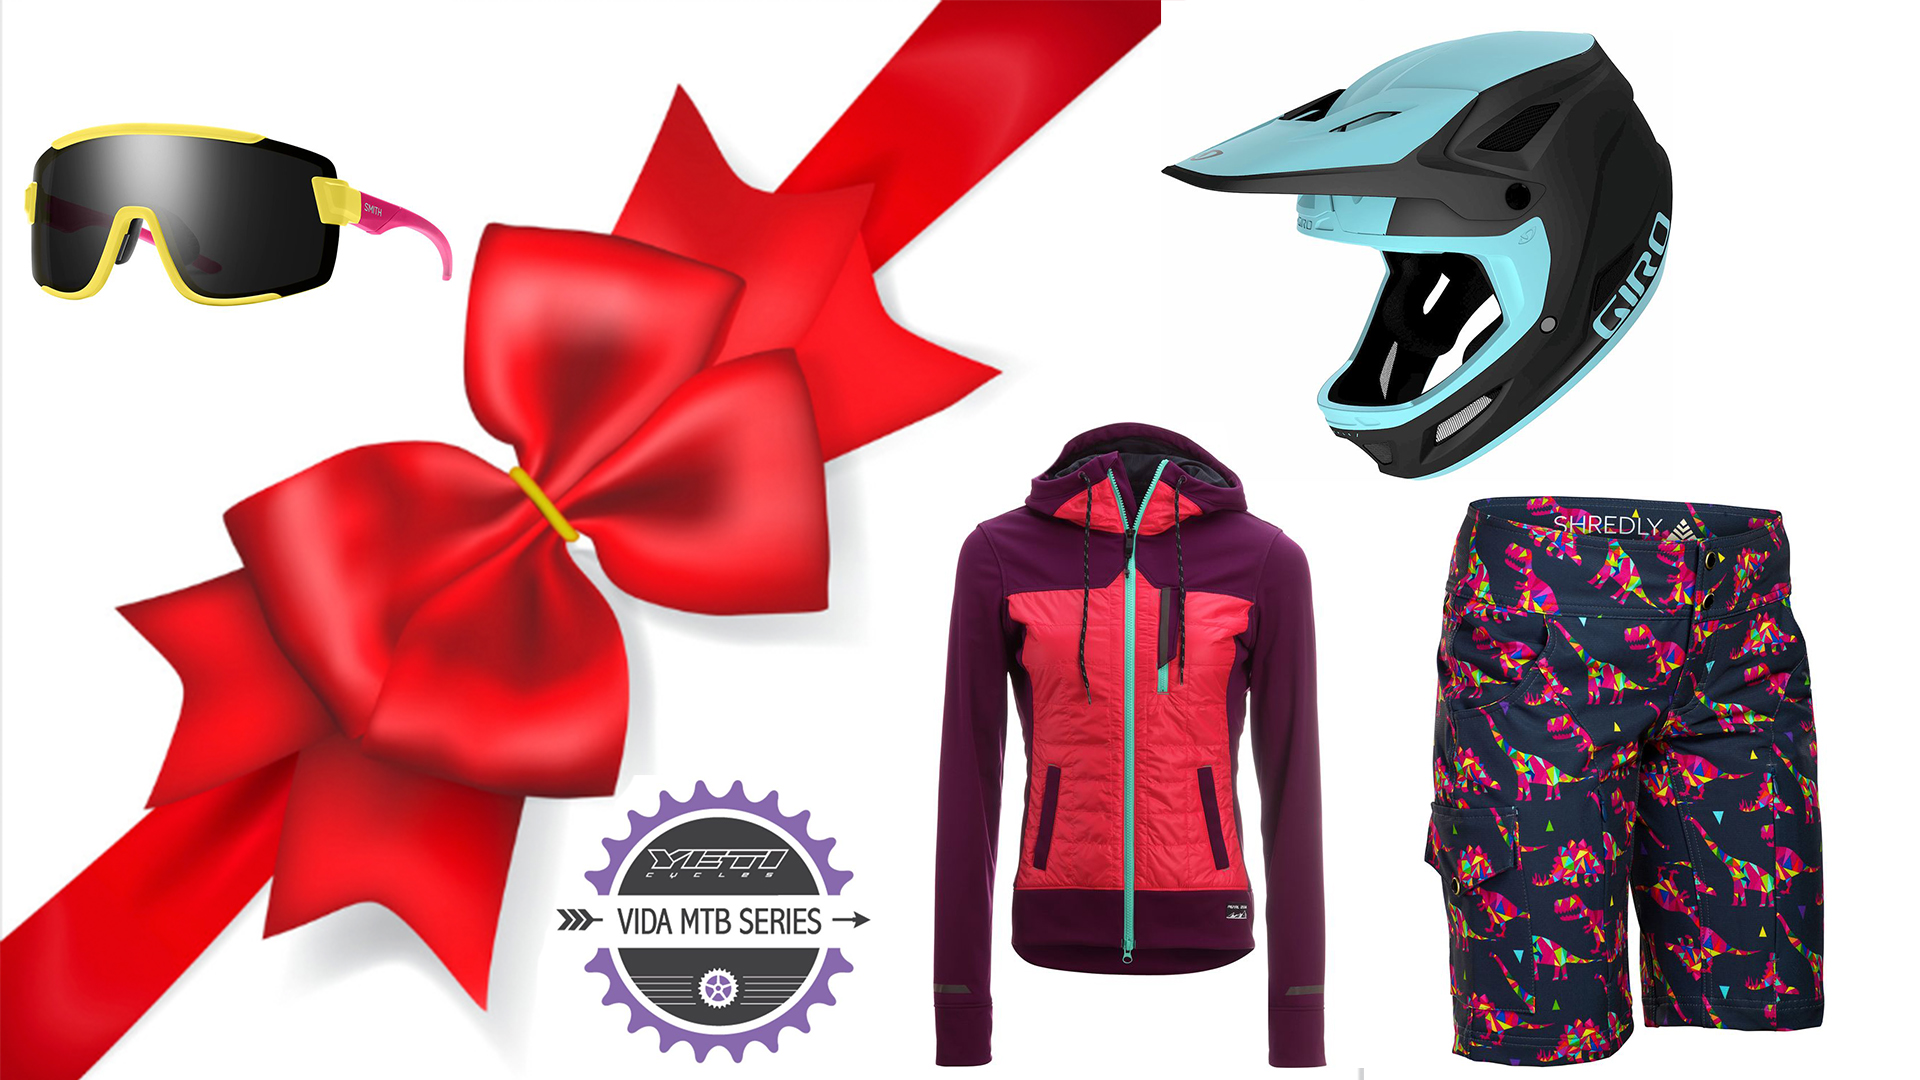 Check out our selection of gift ideas for the woman who leaves you in the dust.